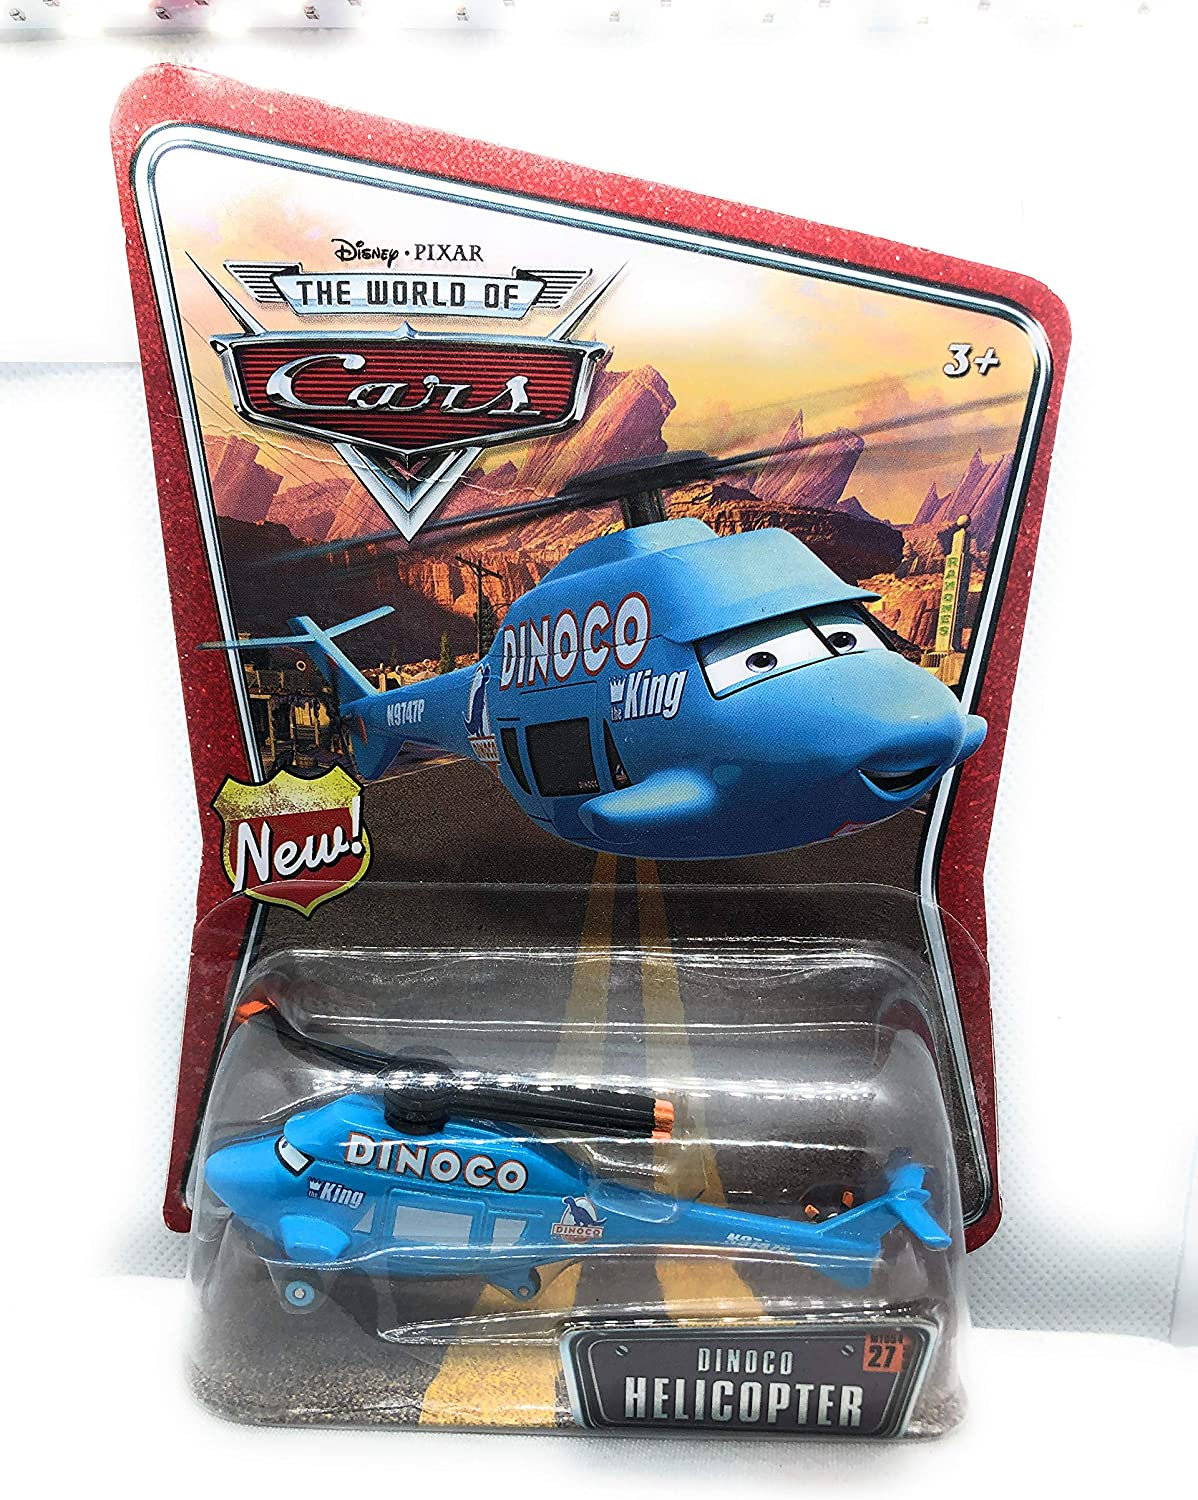 Dinoco Helicopter Disney World of Cars Edition 1:55 Scale Mattel